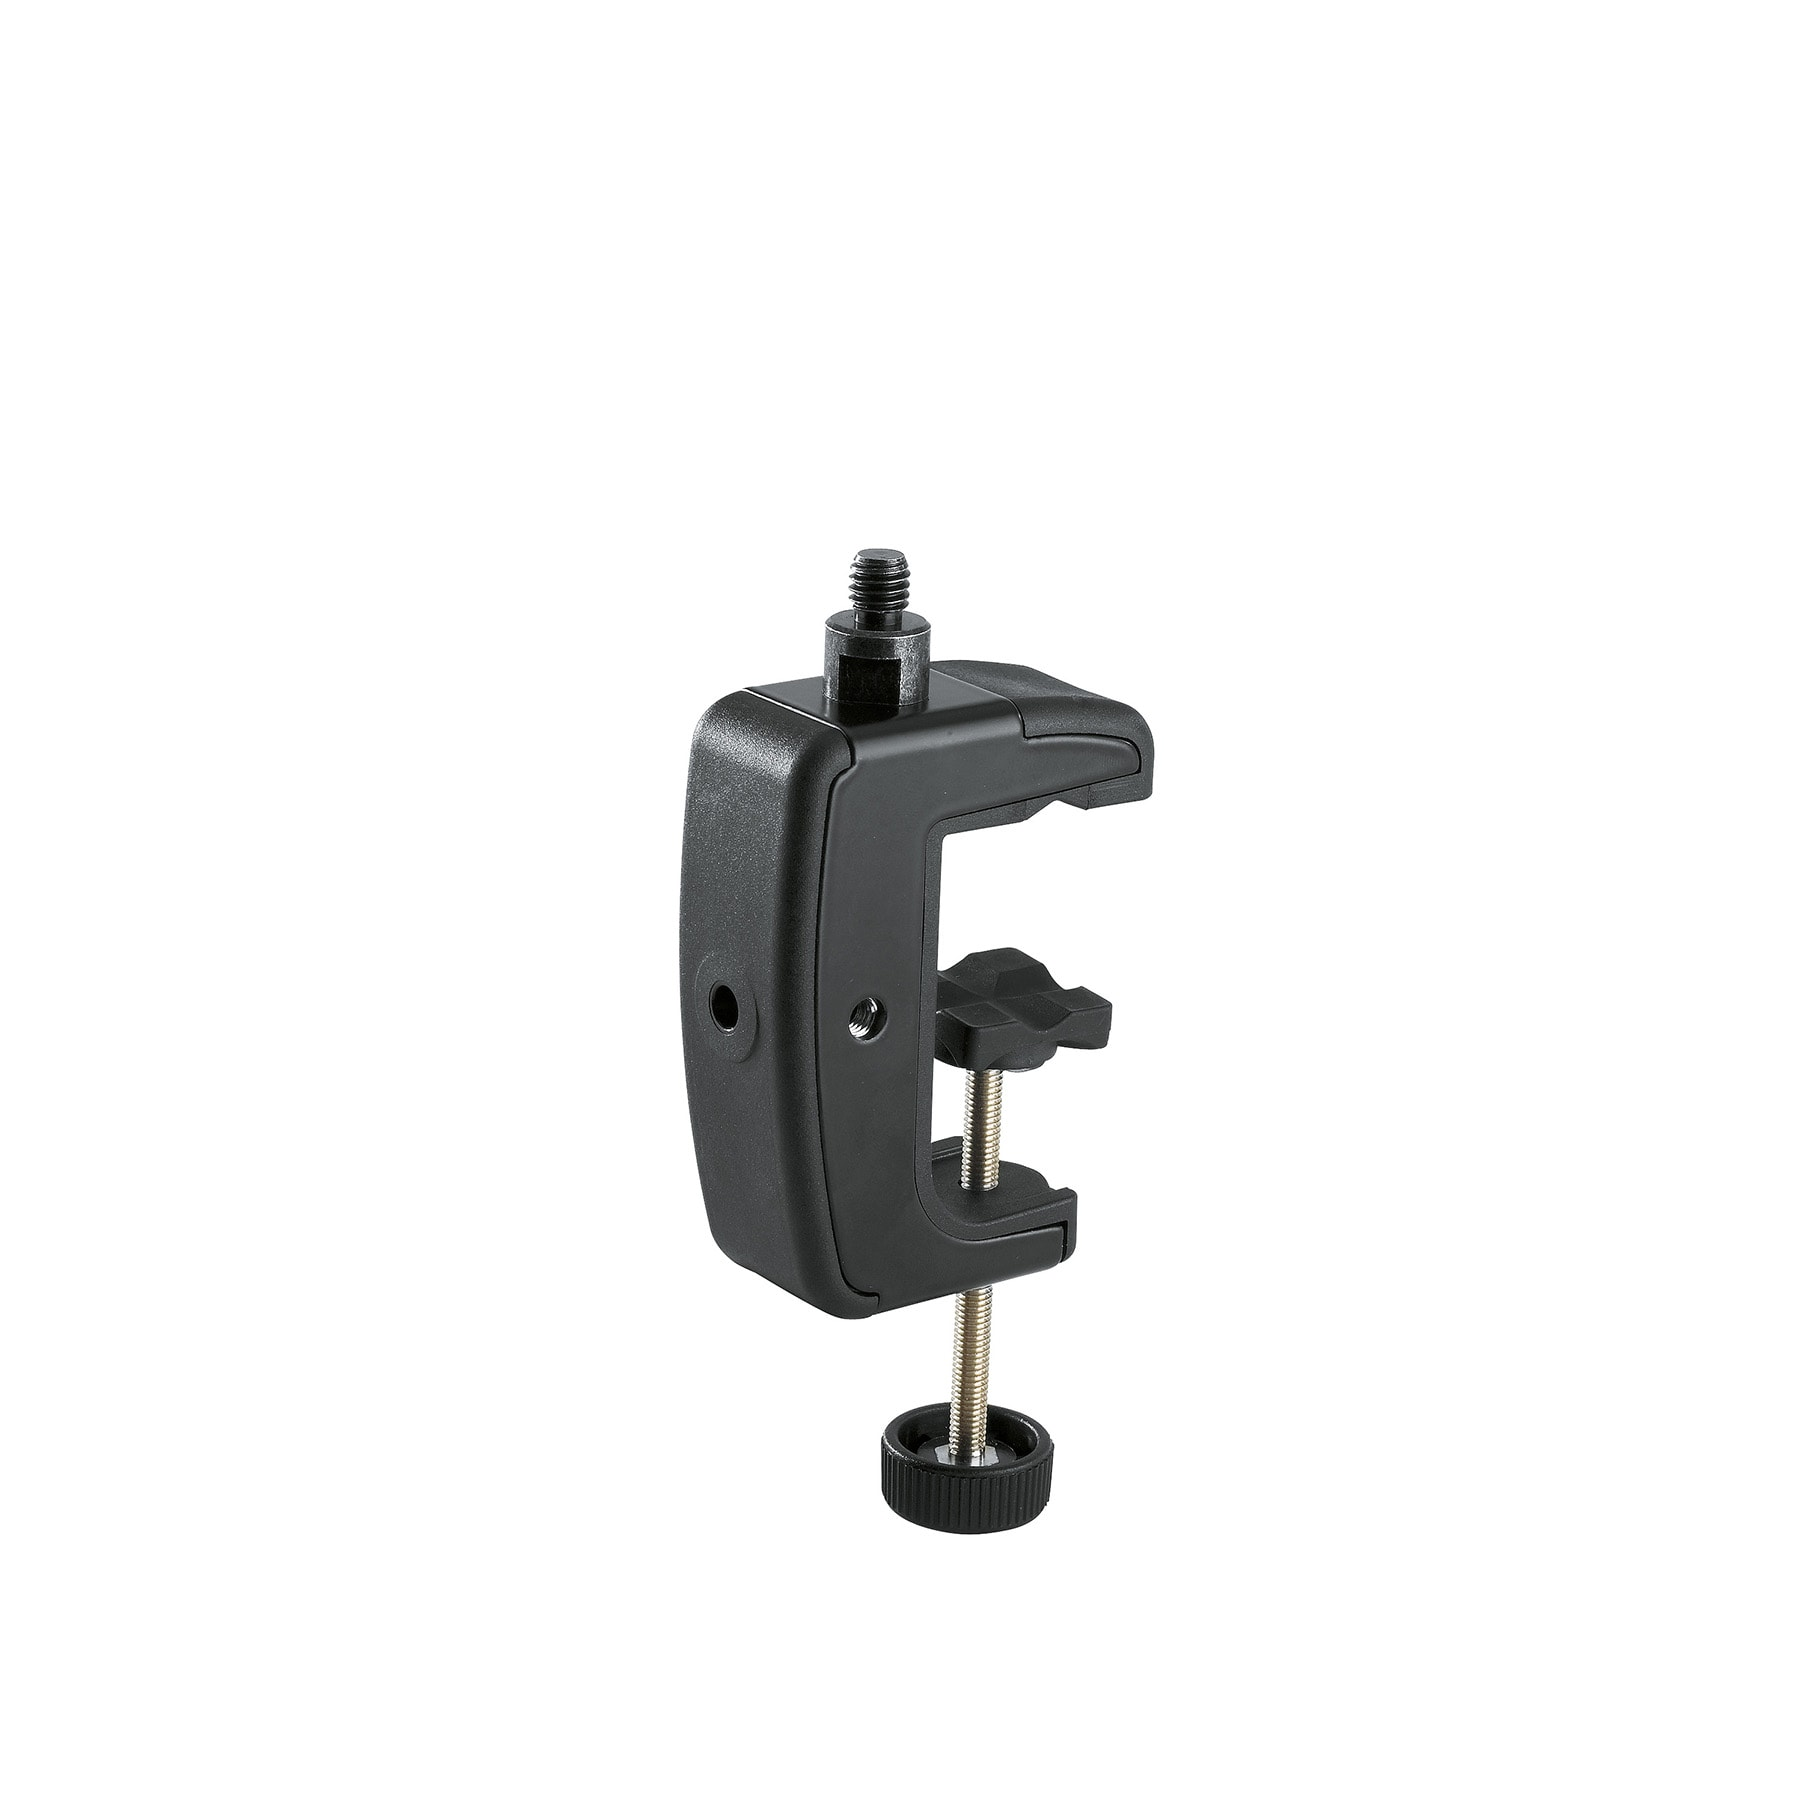 KM23720 - Table clamp